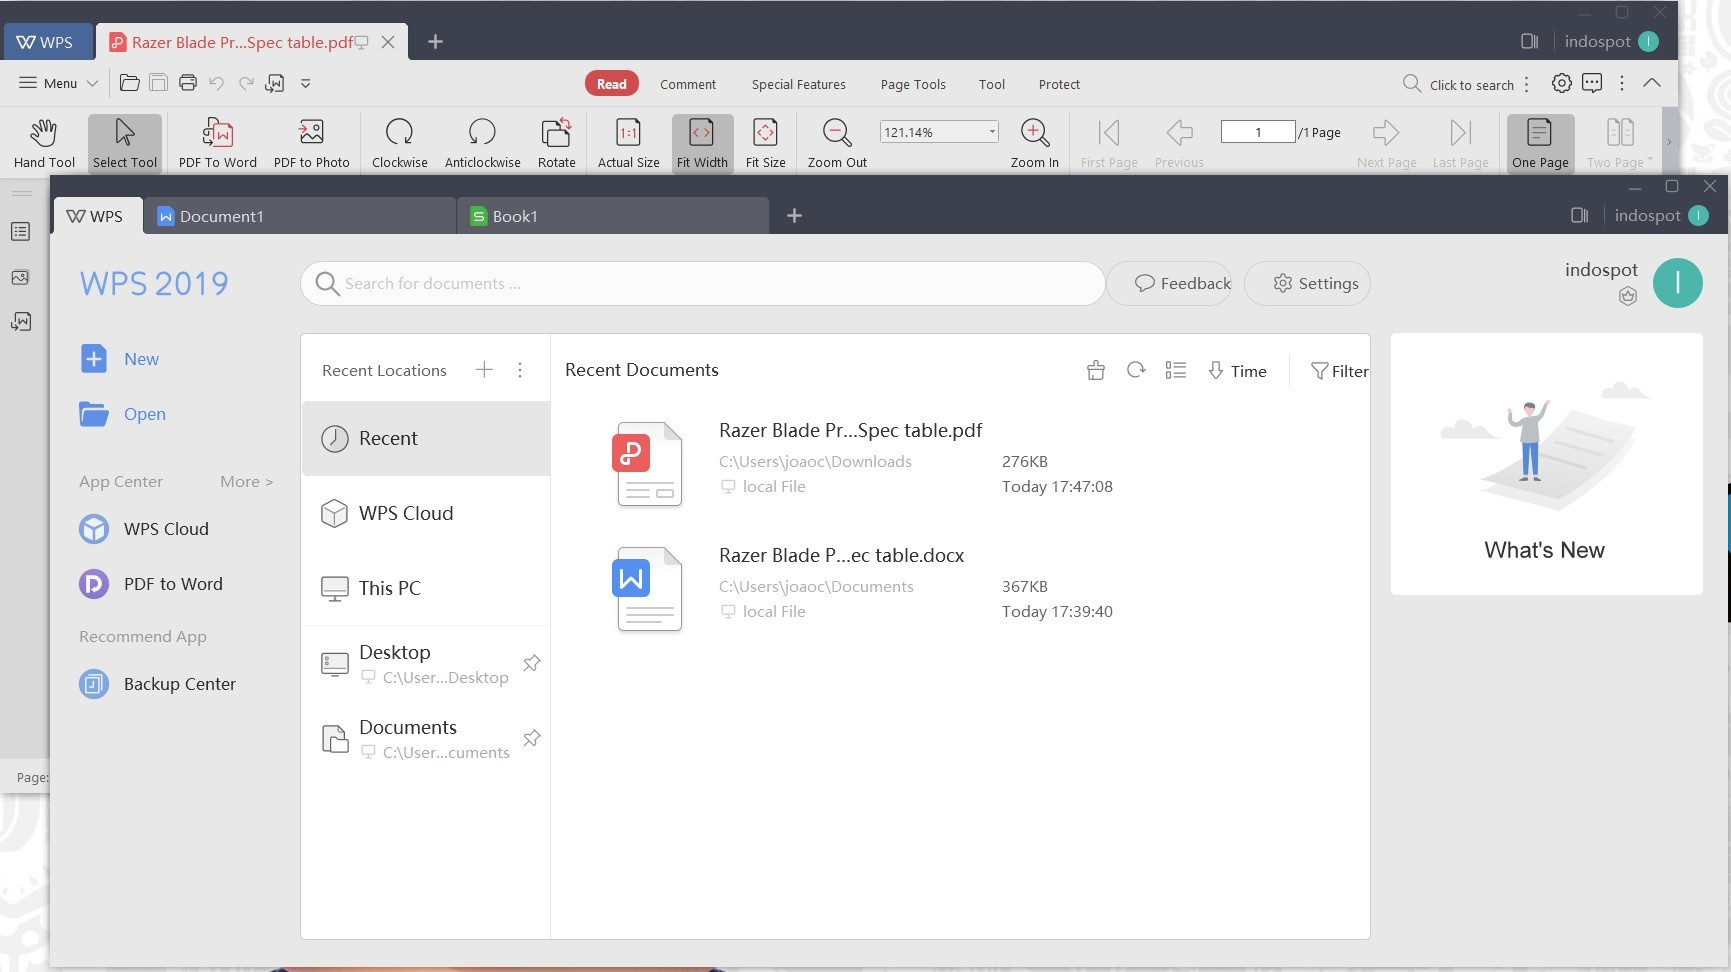 WPS Office 2019 is now available in the Microsoft Store - Neowin